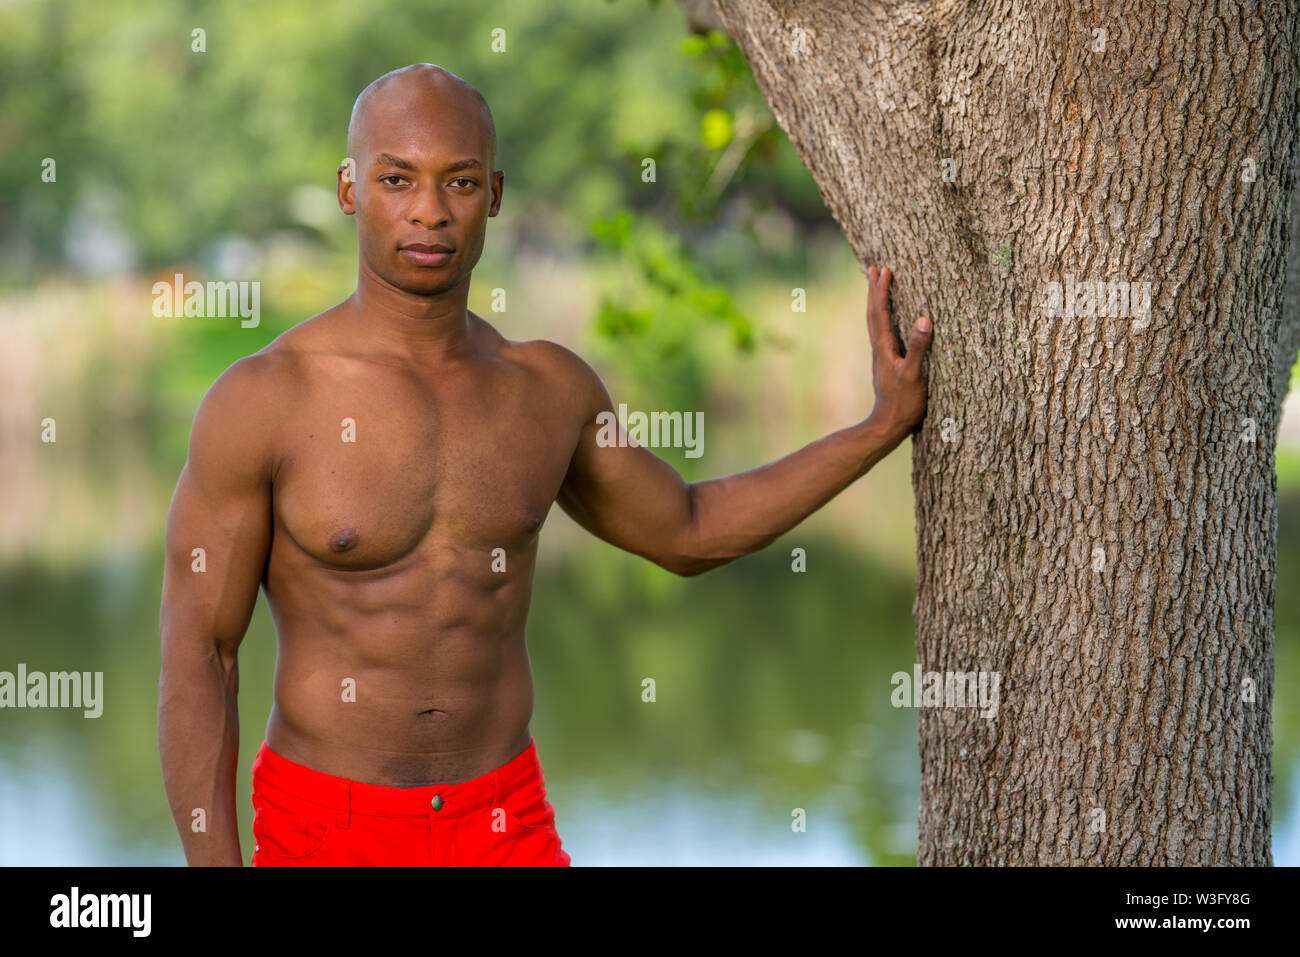 Image of an attractive fitness model with hand on tree in the park. Image lit with flash and natural light mix - Stock Image